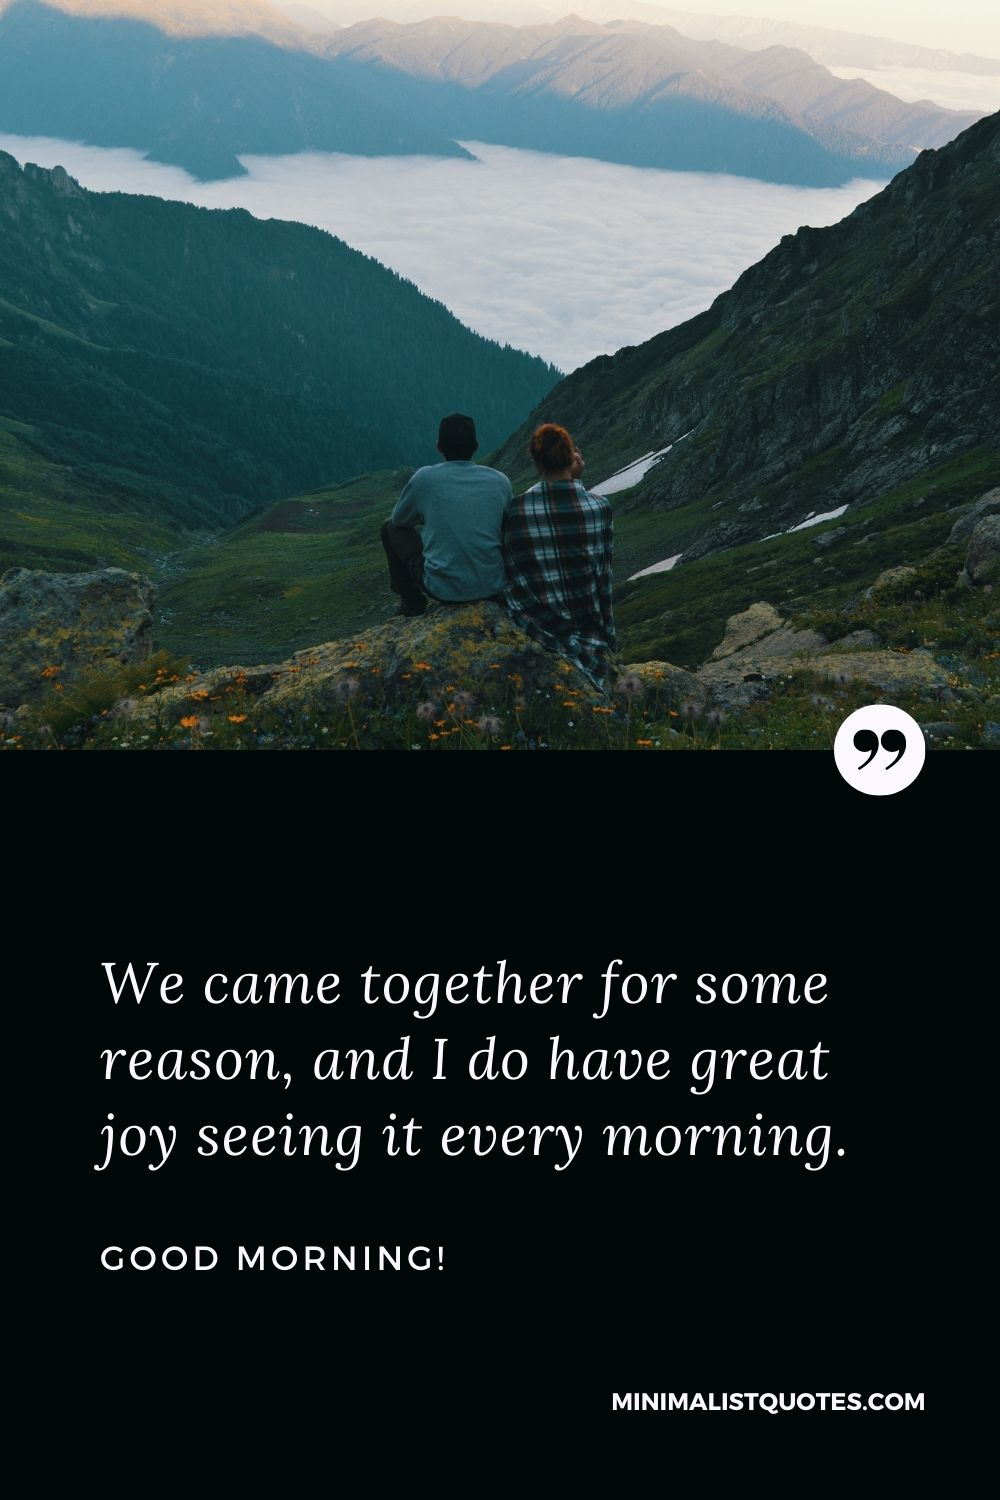 Good Morning Wish & Message With HD Image: We came together for some reason, and I do have great joy seeing it every morning. Good Morning!